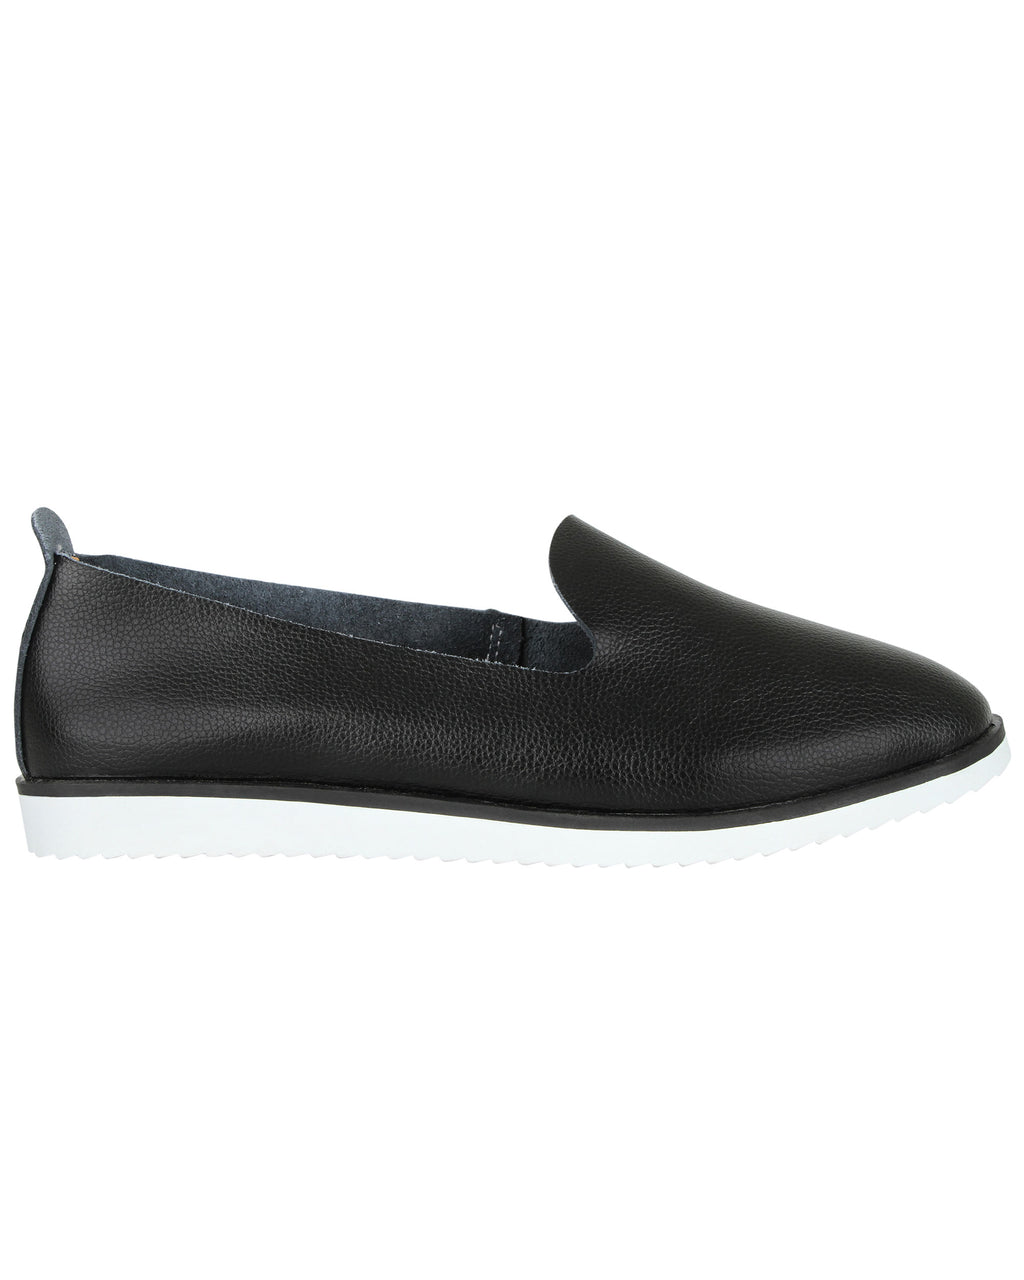 Tomaz LY55 Ladies Whole Cut Slip Ons (Black)